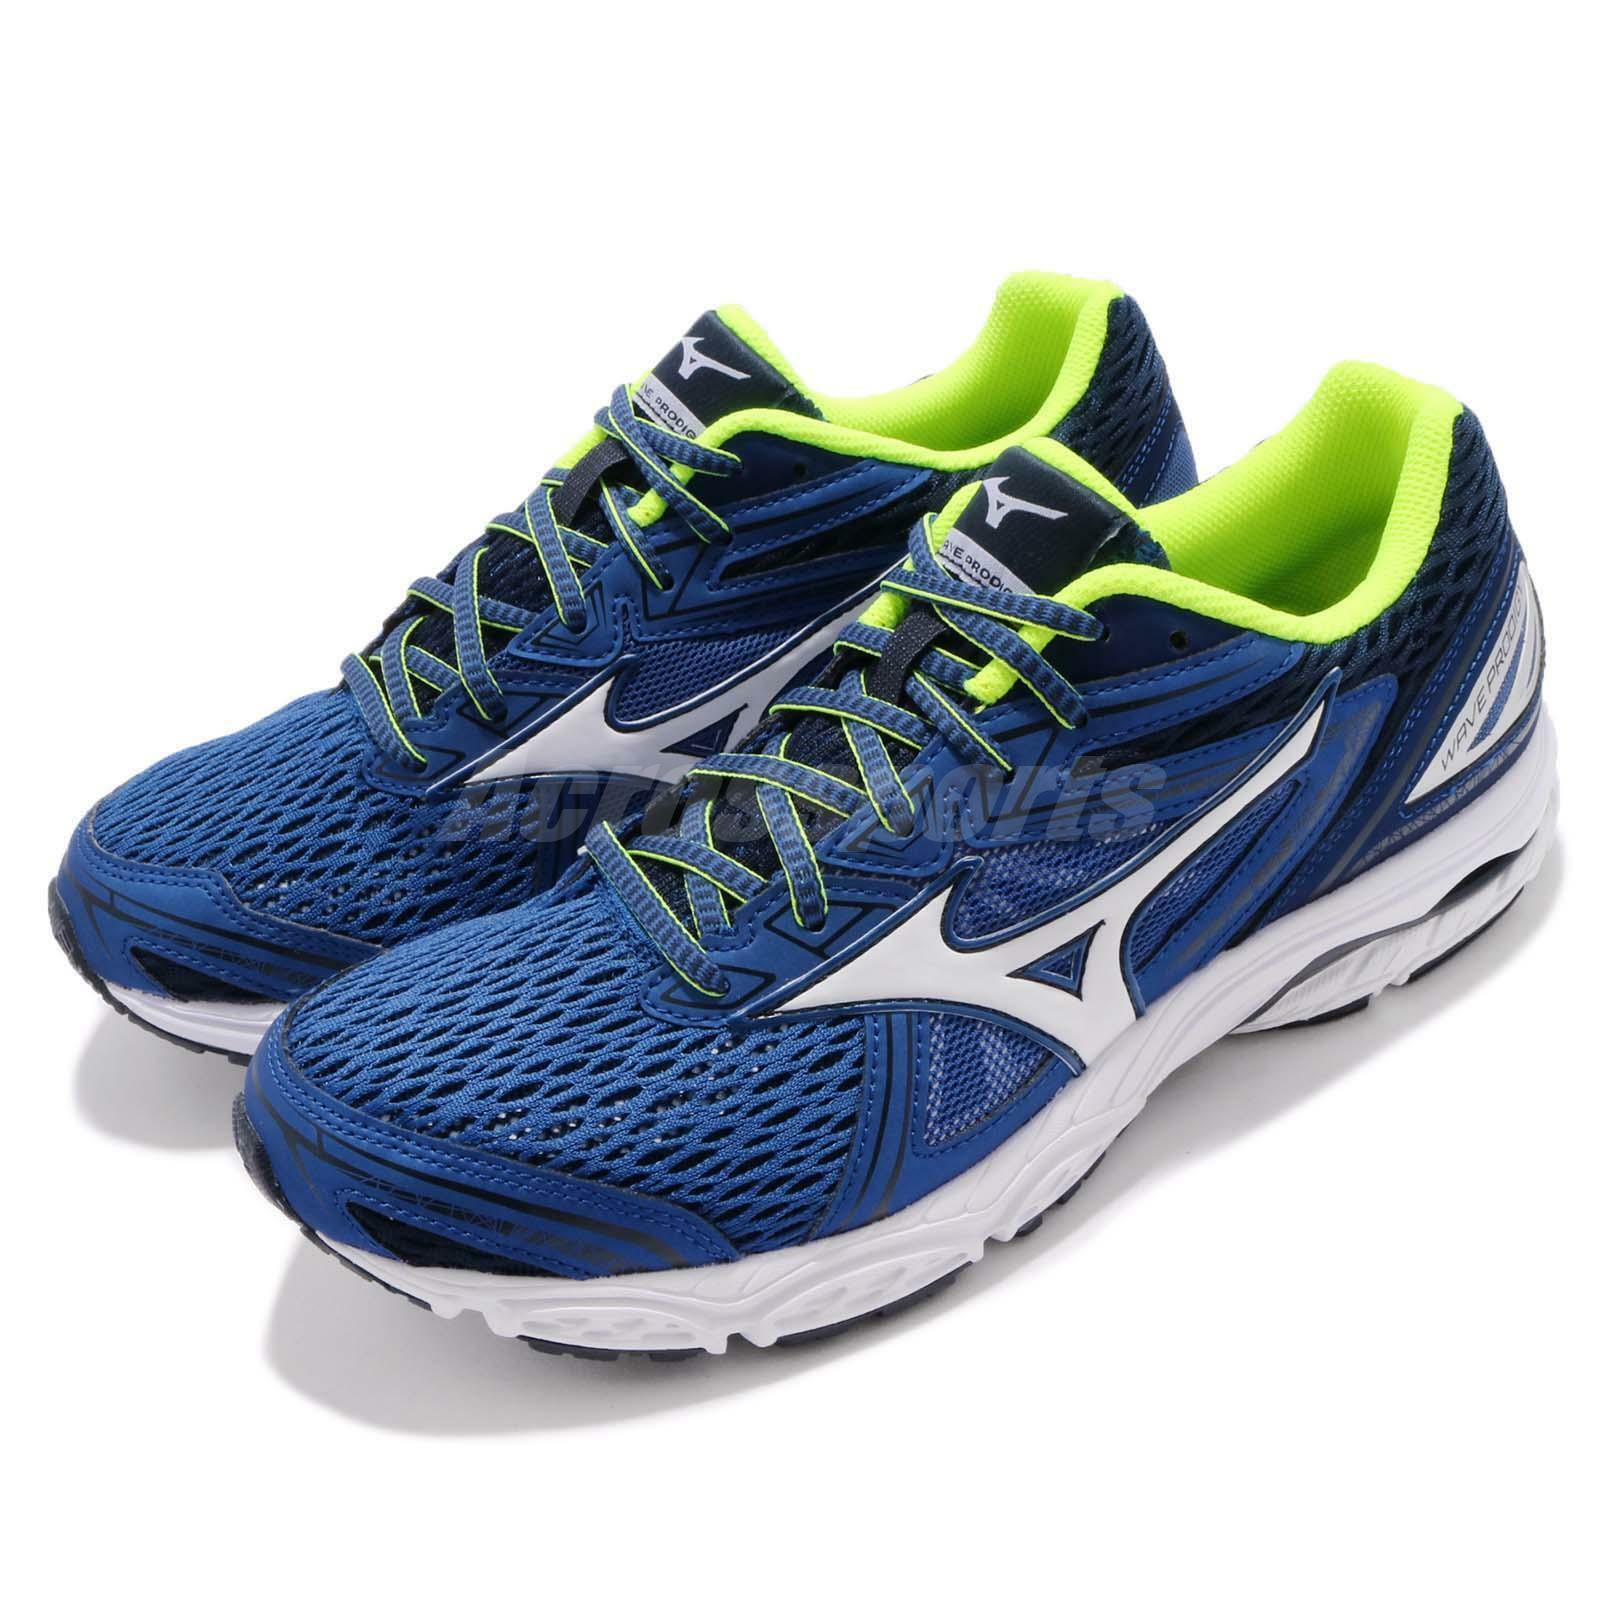 Mizuno Wave Prodigy bluee White Men Running shoes Sneakers Trainers J1GC1710-02